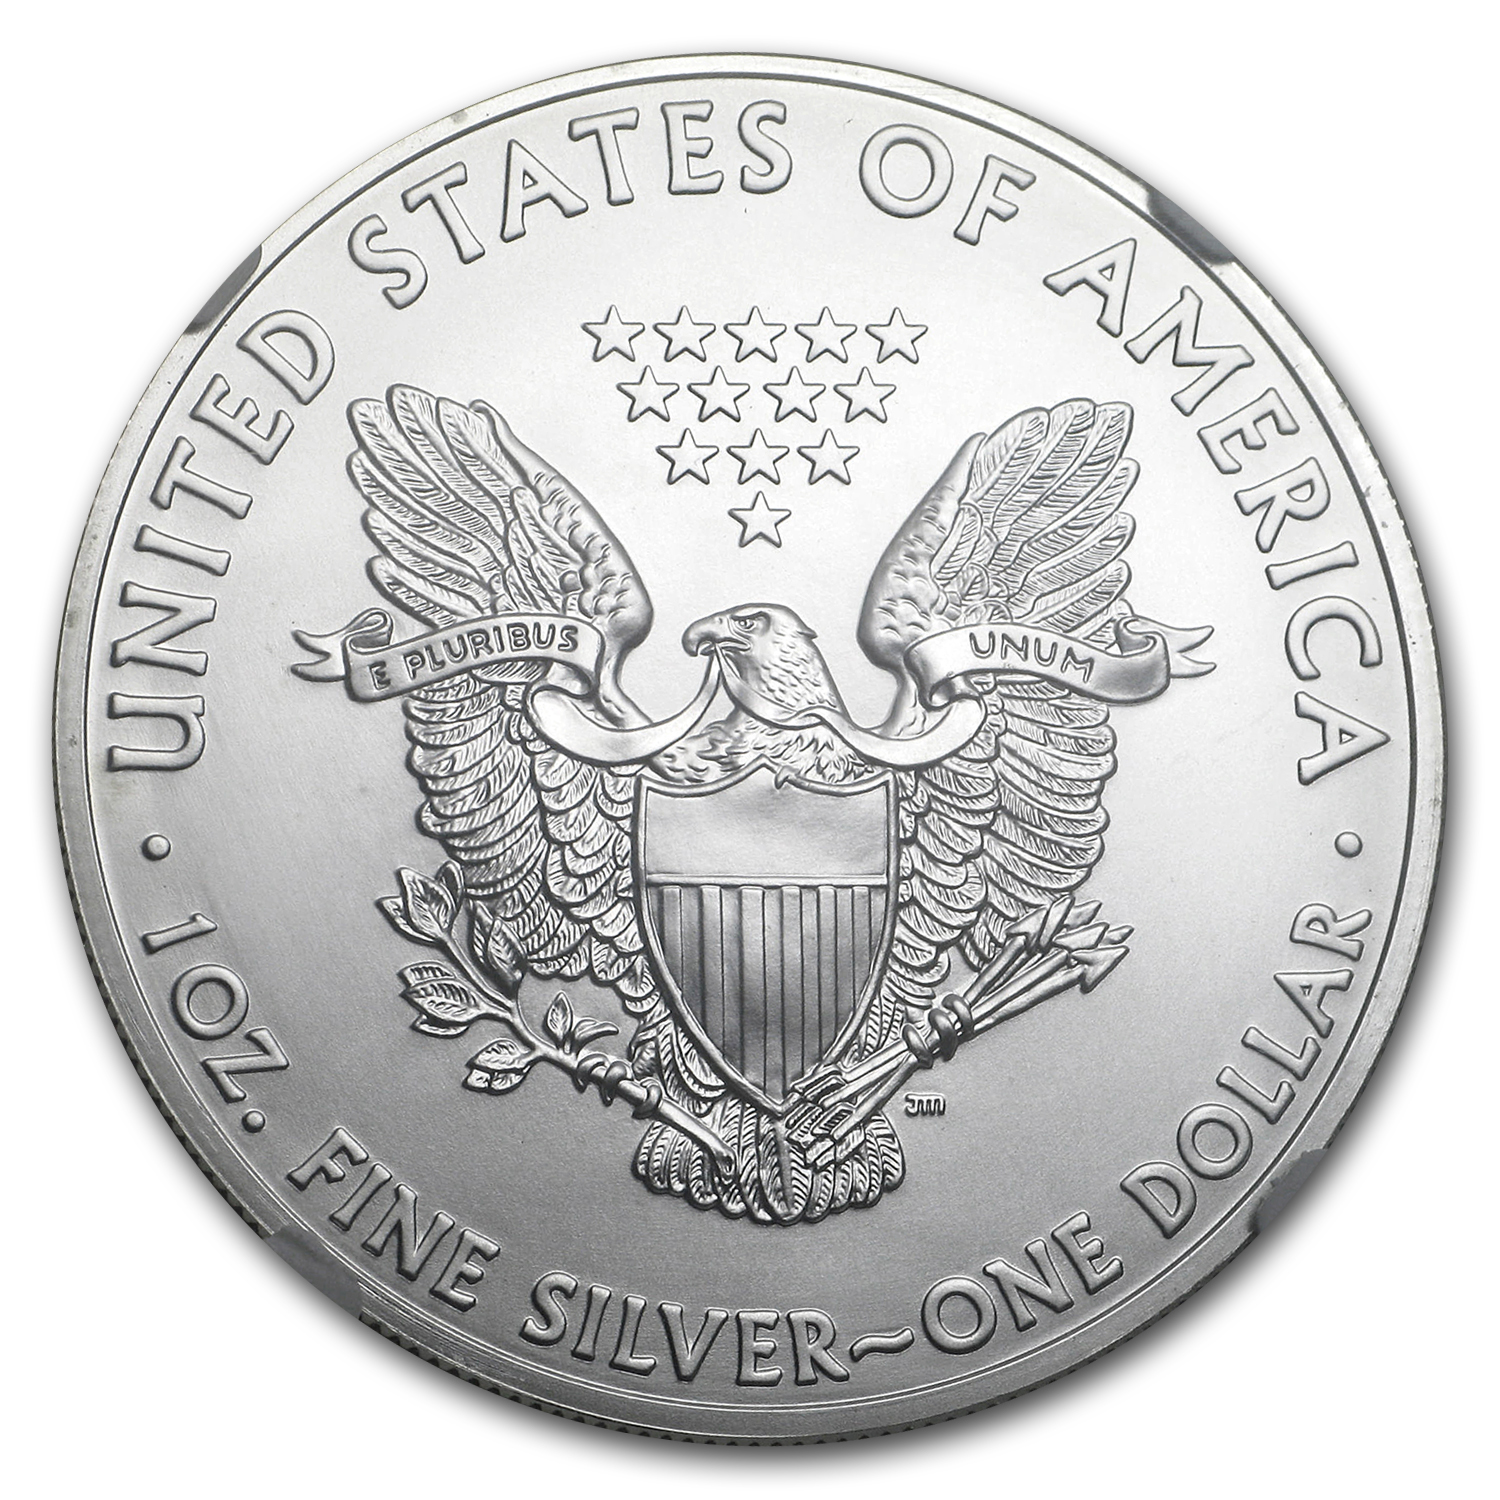 2011 (S) Silver Eagle MS-69 NGC (Golden Gate Label)